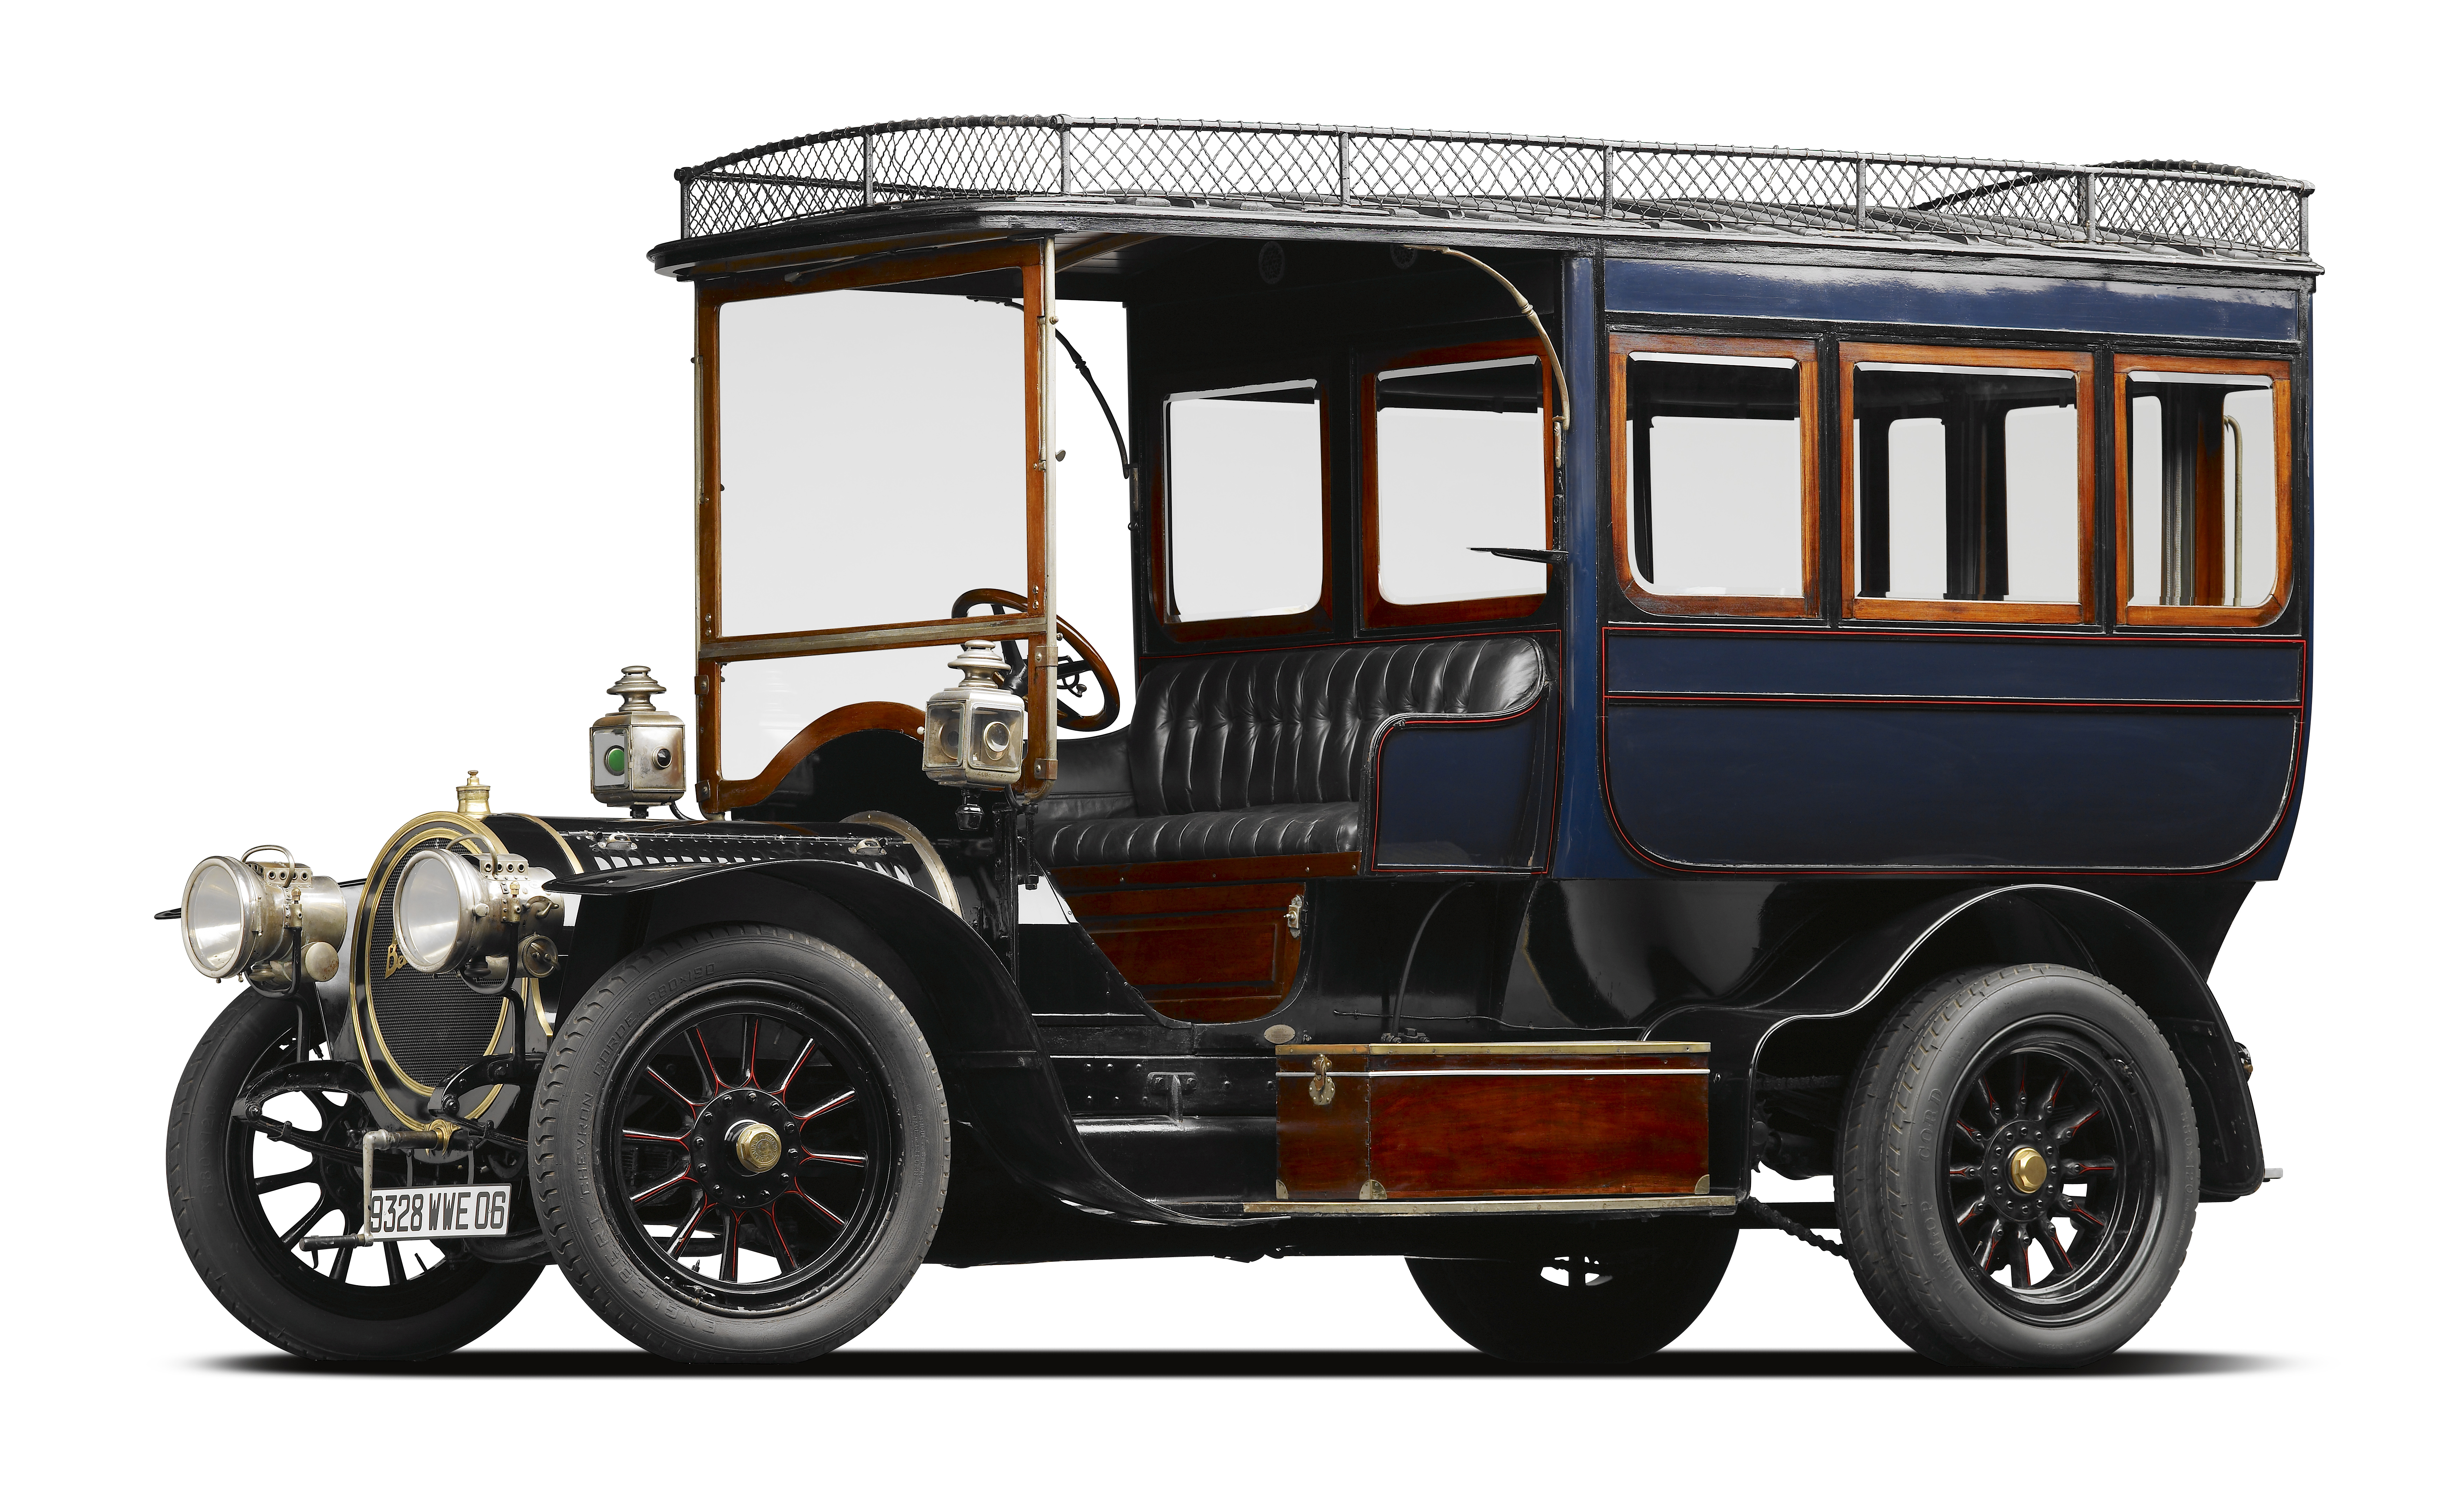 delaunay belleville omnibus mullin museum 1912 delage f3q mf french monterey automotive d8 1937 finest bringing invade beauties poised octet